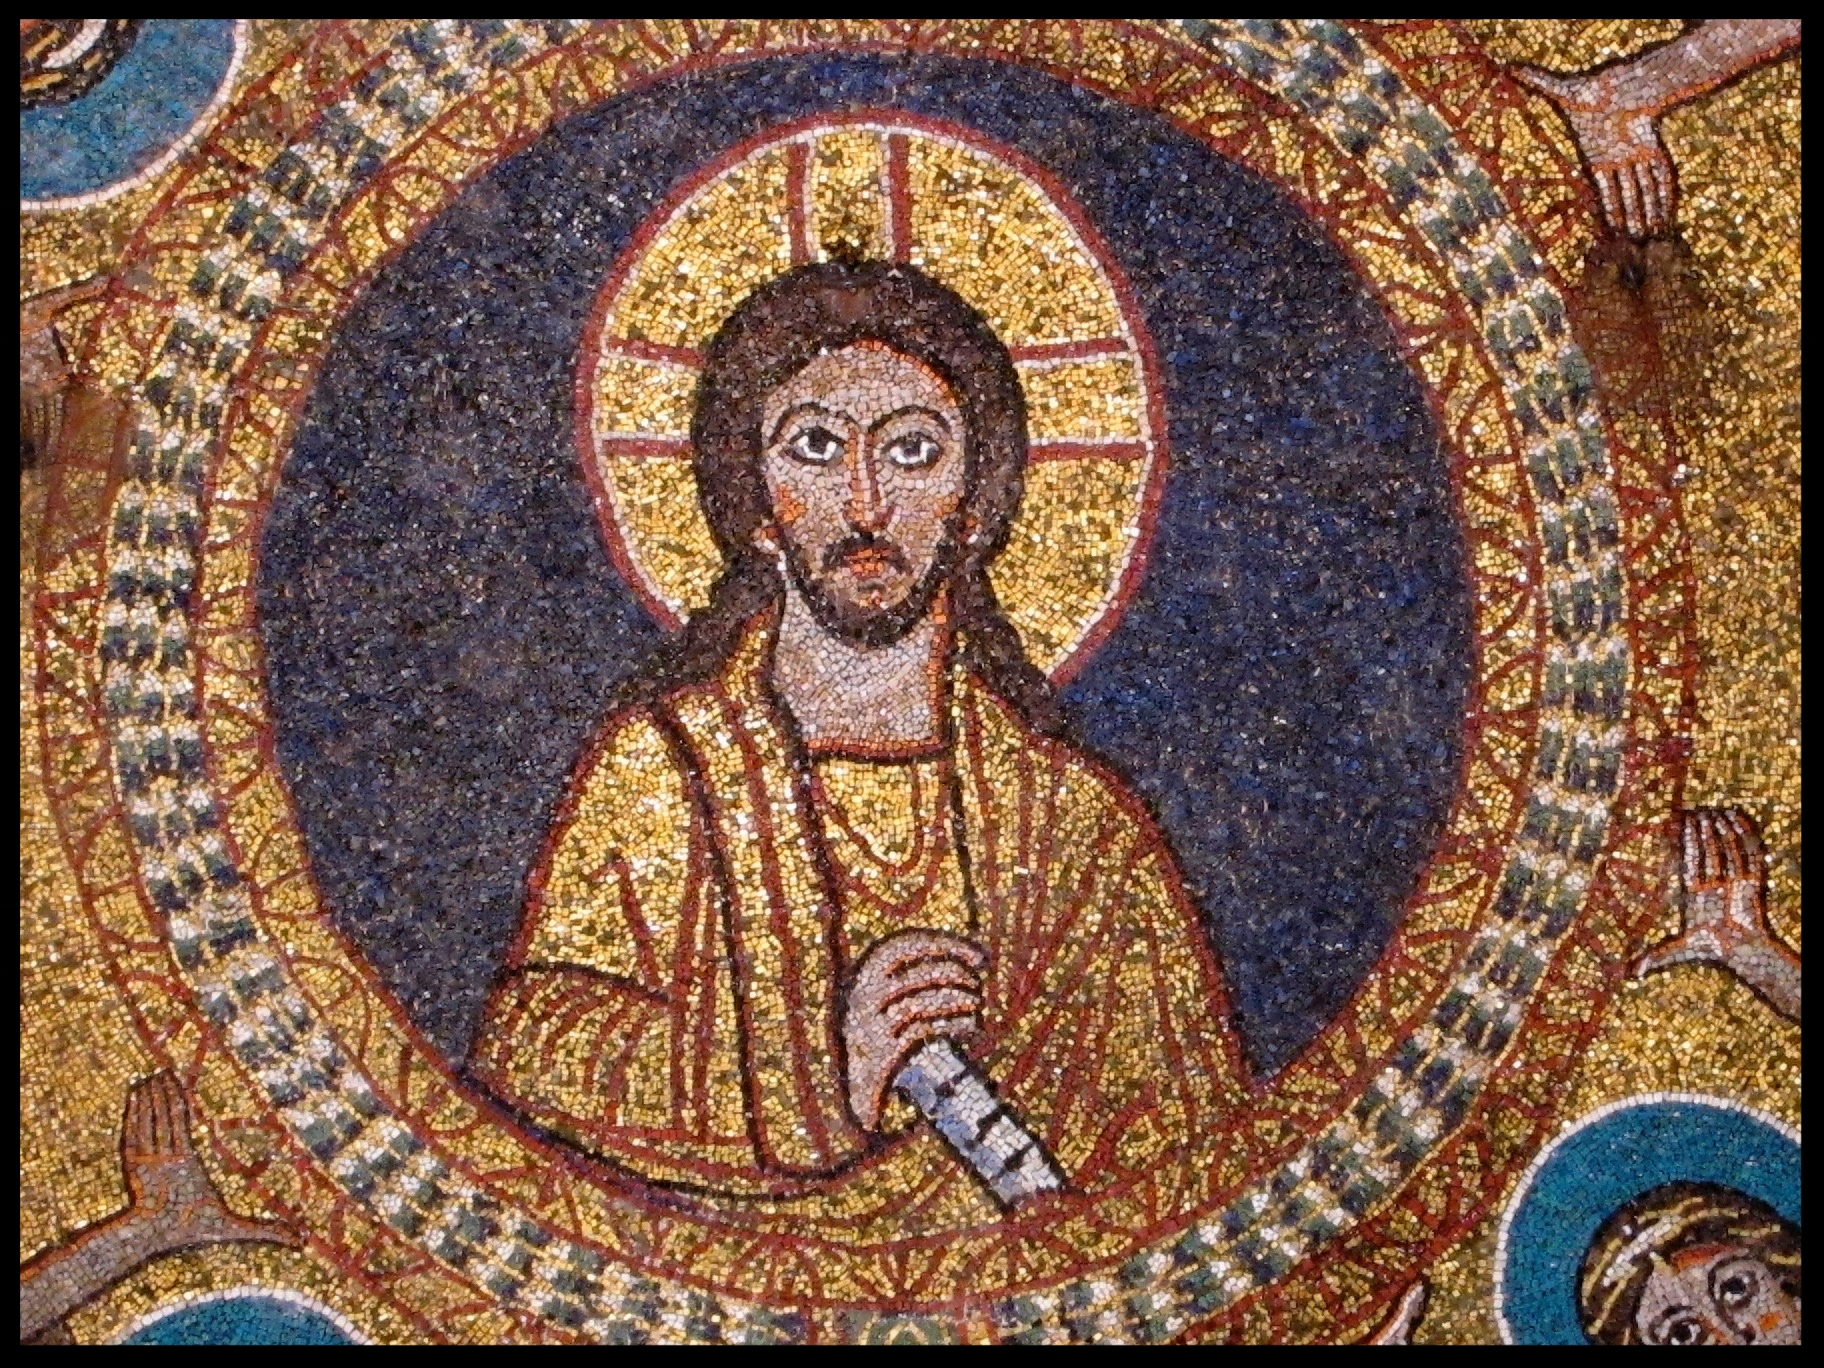 Rondel of Christ from the ceiling mosaic of the St. Zeno Chapel